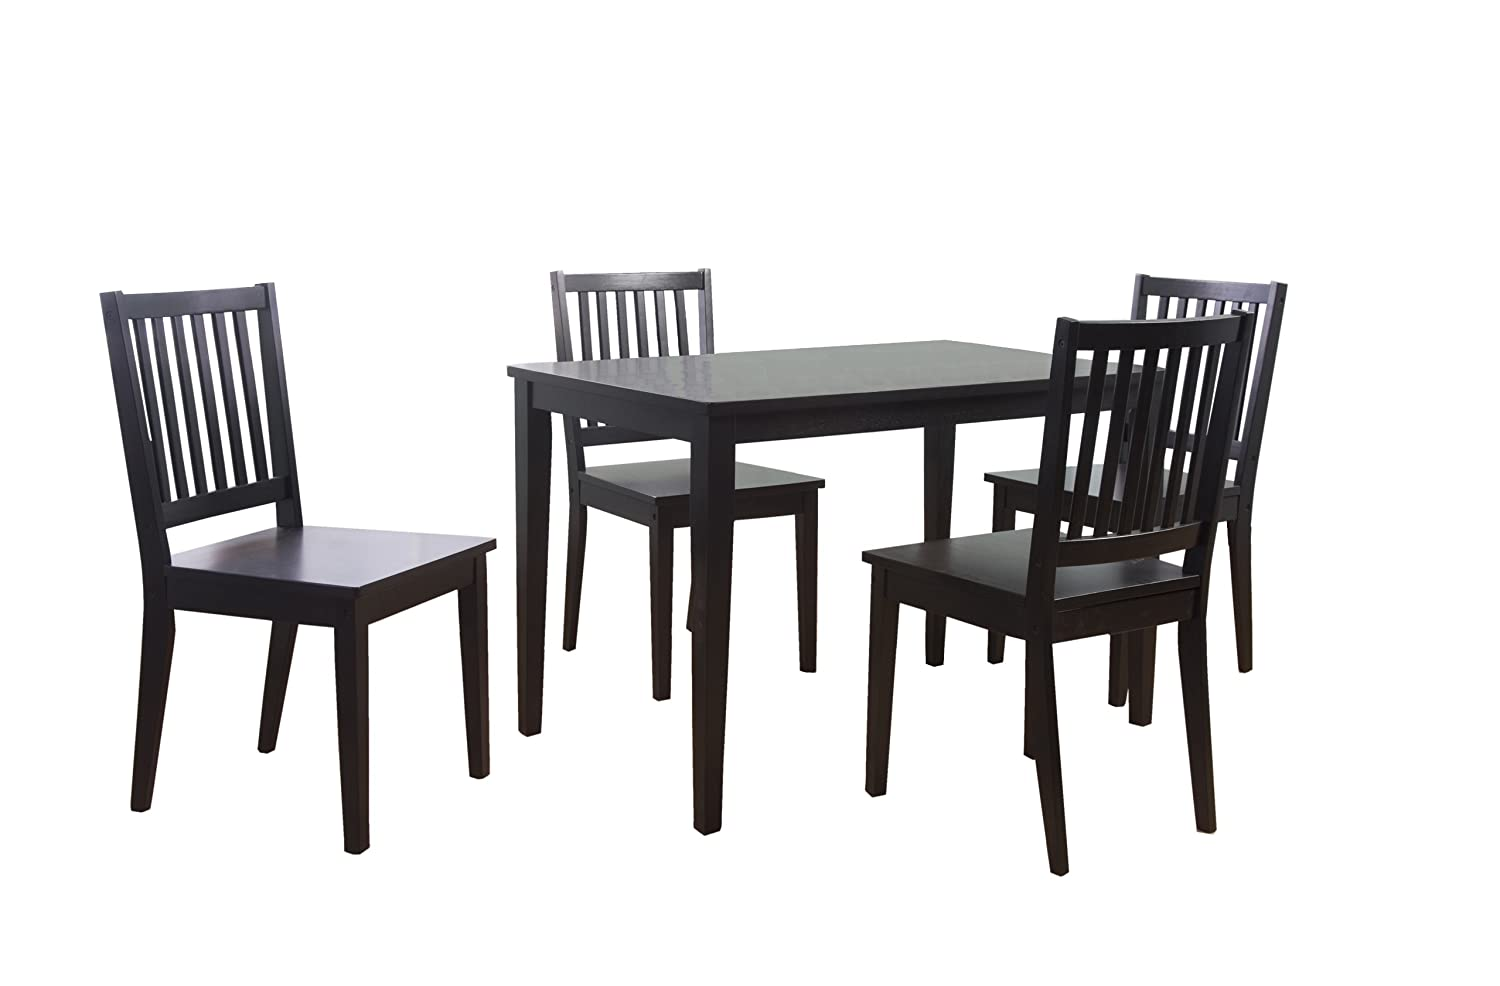 amazoncom target marketing systems 5 piece shaker dining set with 4 slat back chairs and 1 dining table black table u0026 chair sets